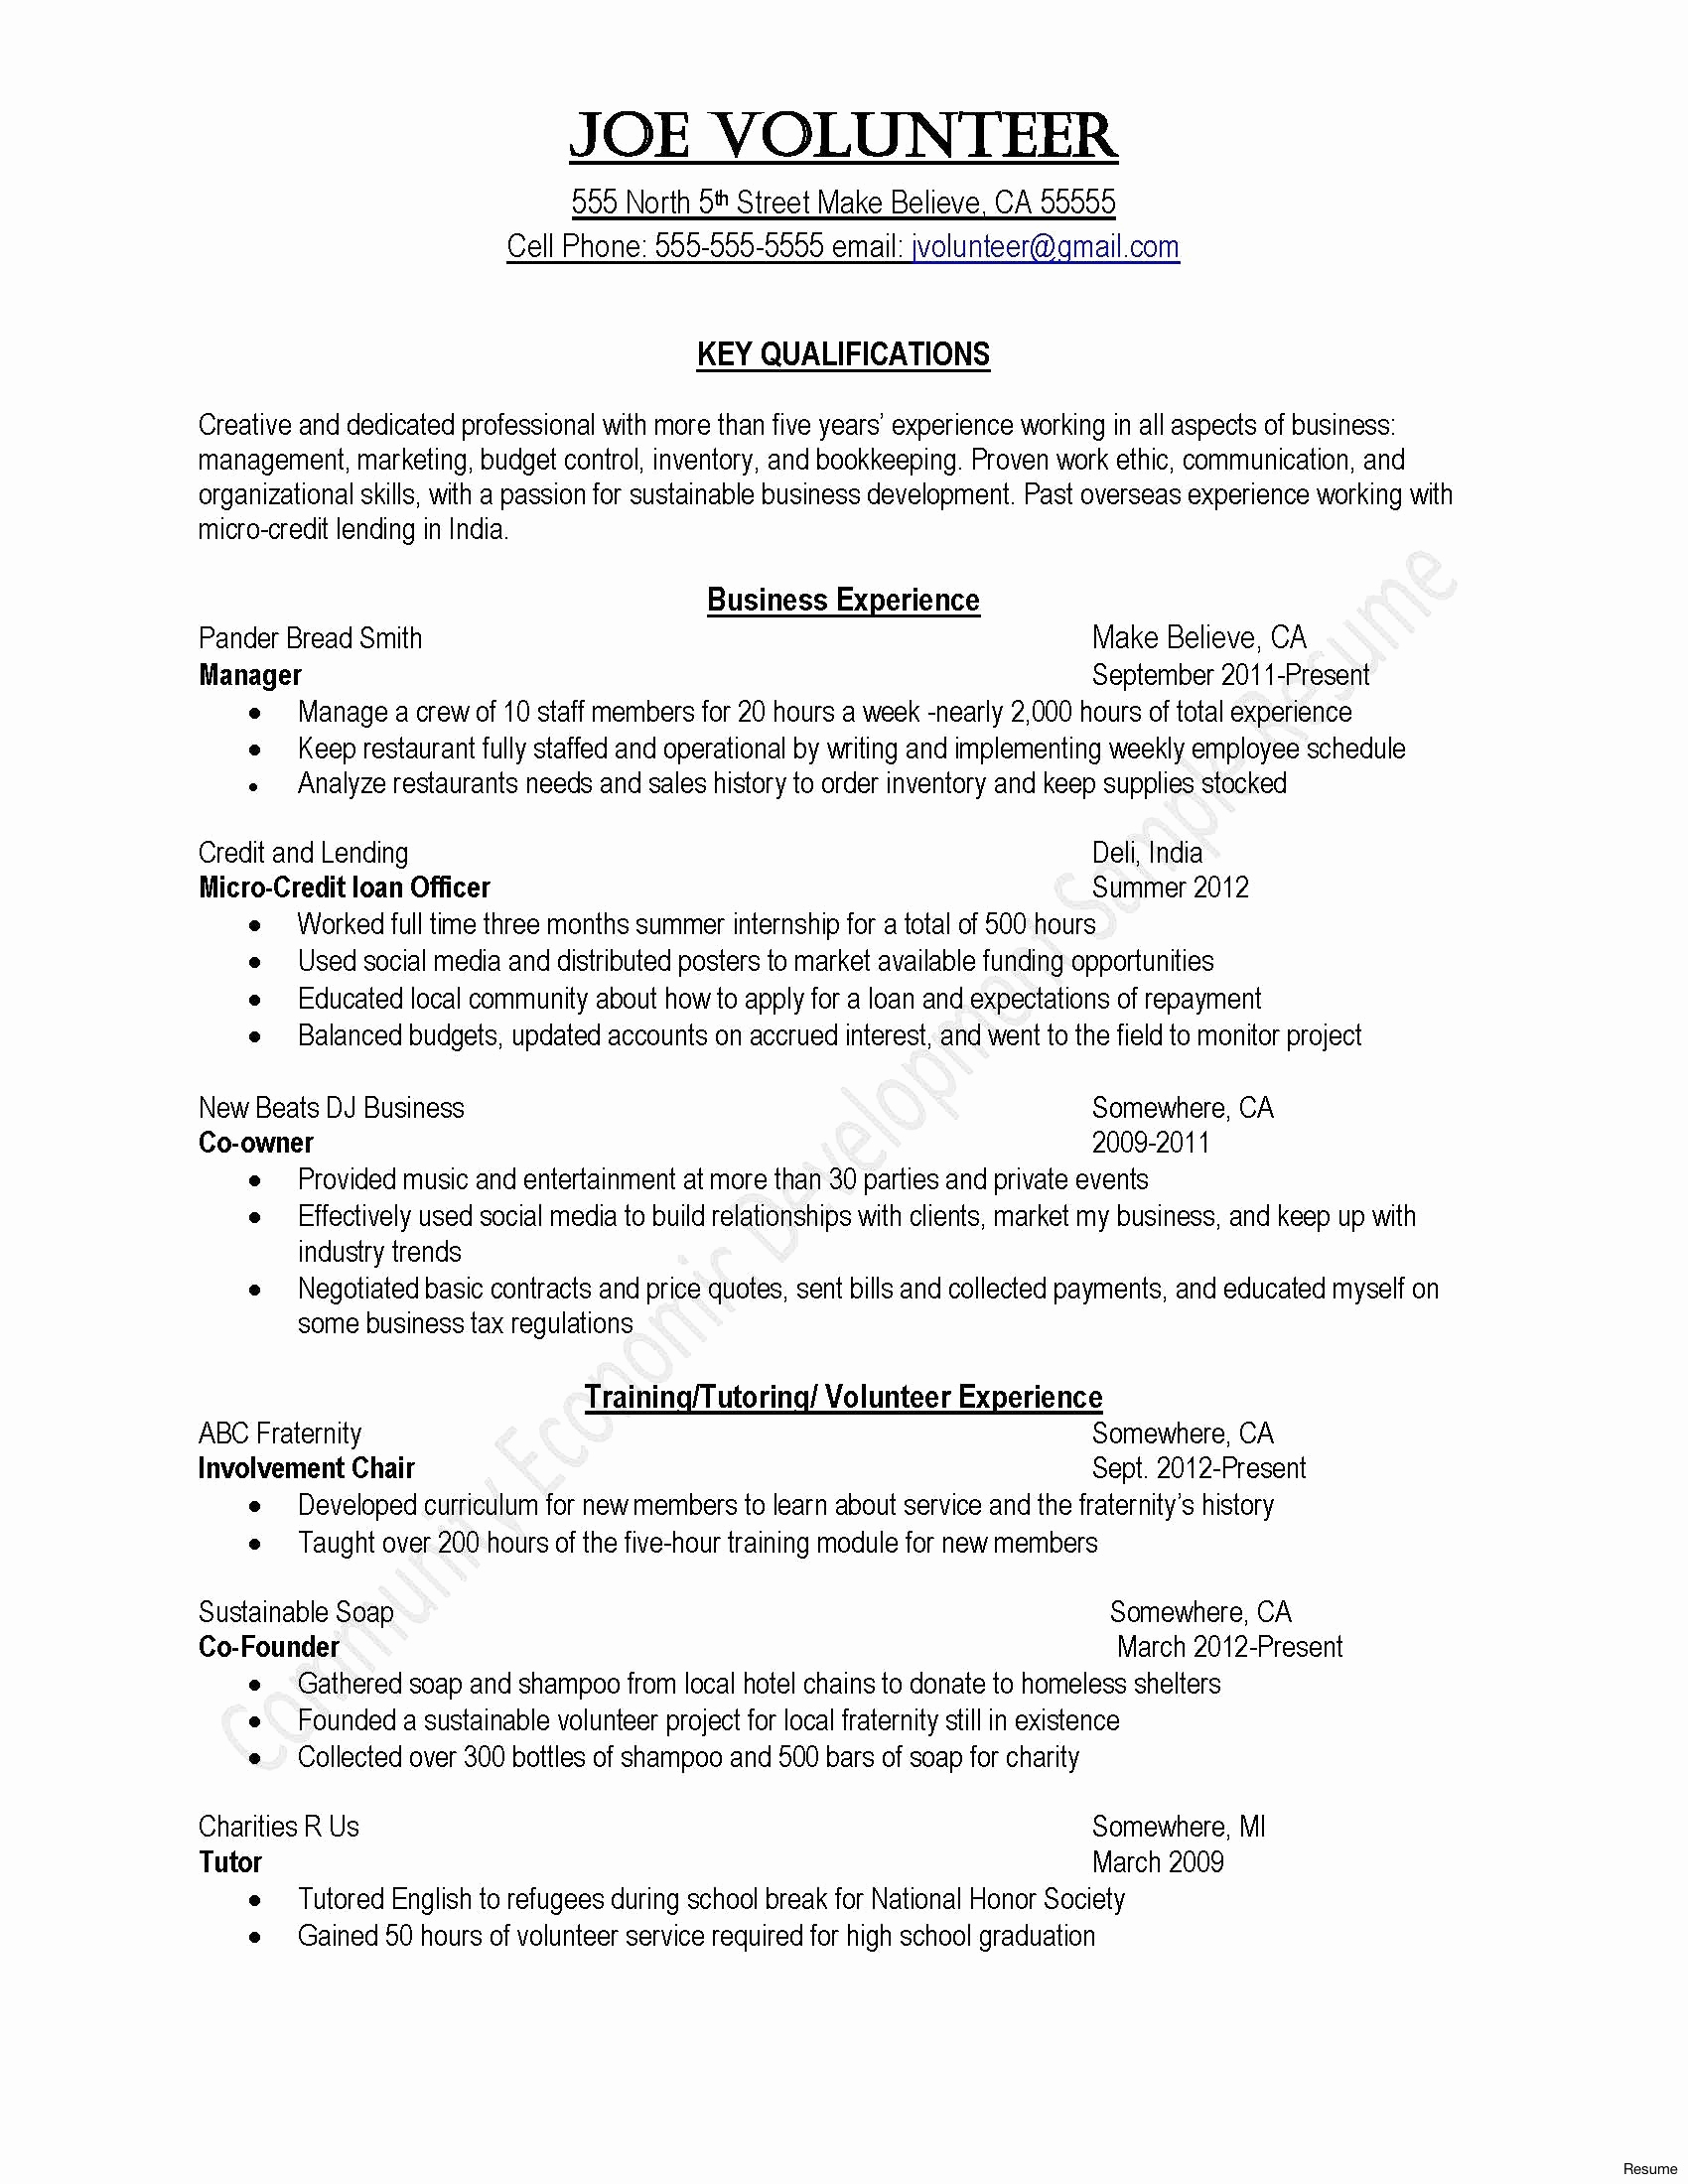 impressive cover letter template example-Cover Letter Template for Resume Unique Od Specialist Sample Resume Resume for Graphic Designer Sample 1-s